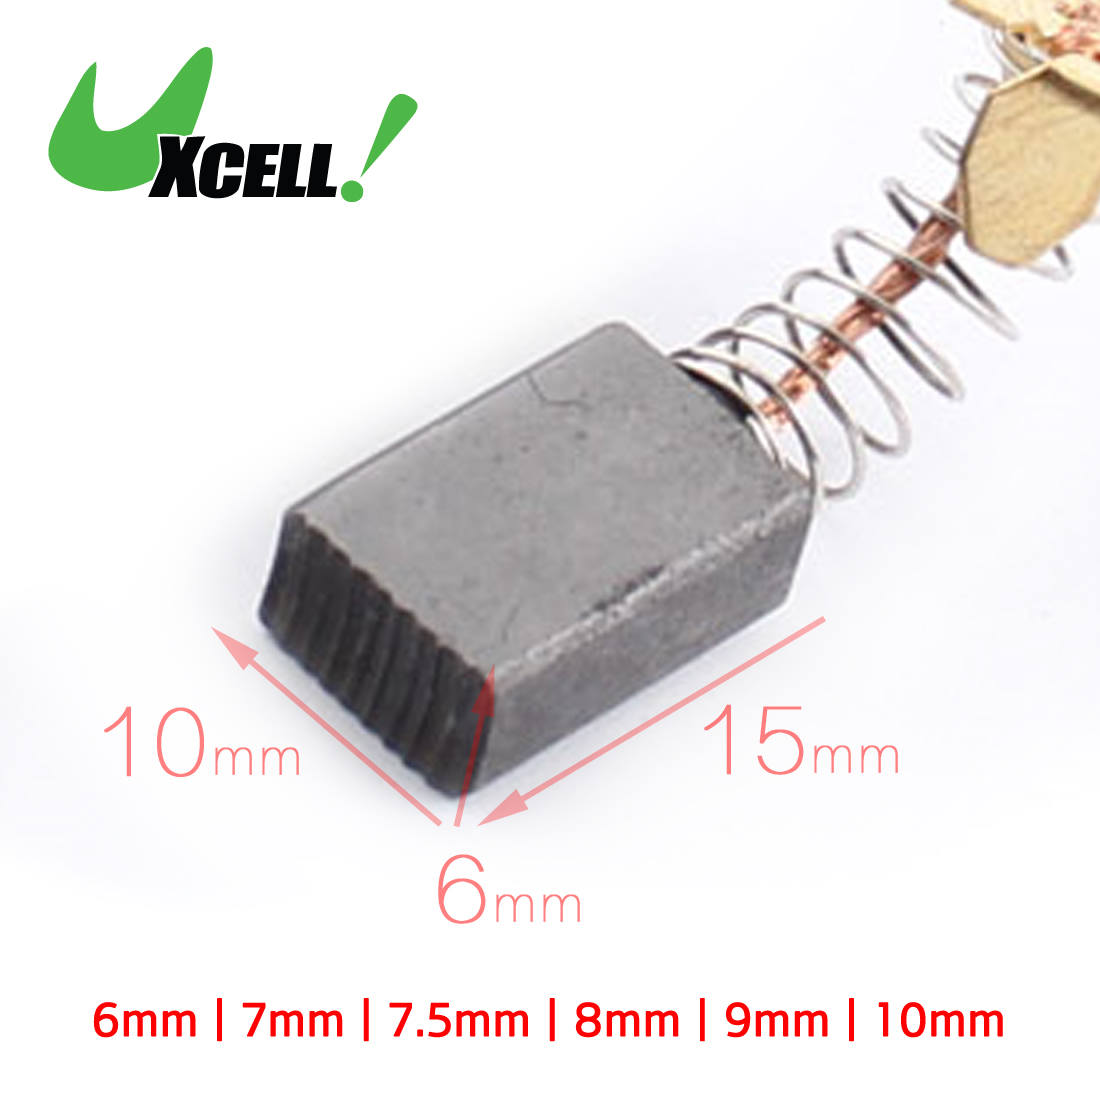 Dmiotech 10 Pcs Electric Drill Motor Carbon Brushes Spare Parts 10mm 11mm 12mm 14mm 17mm 6mm 7.5mm 7mm 8mm